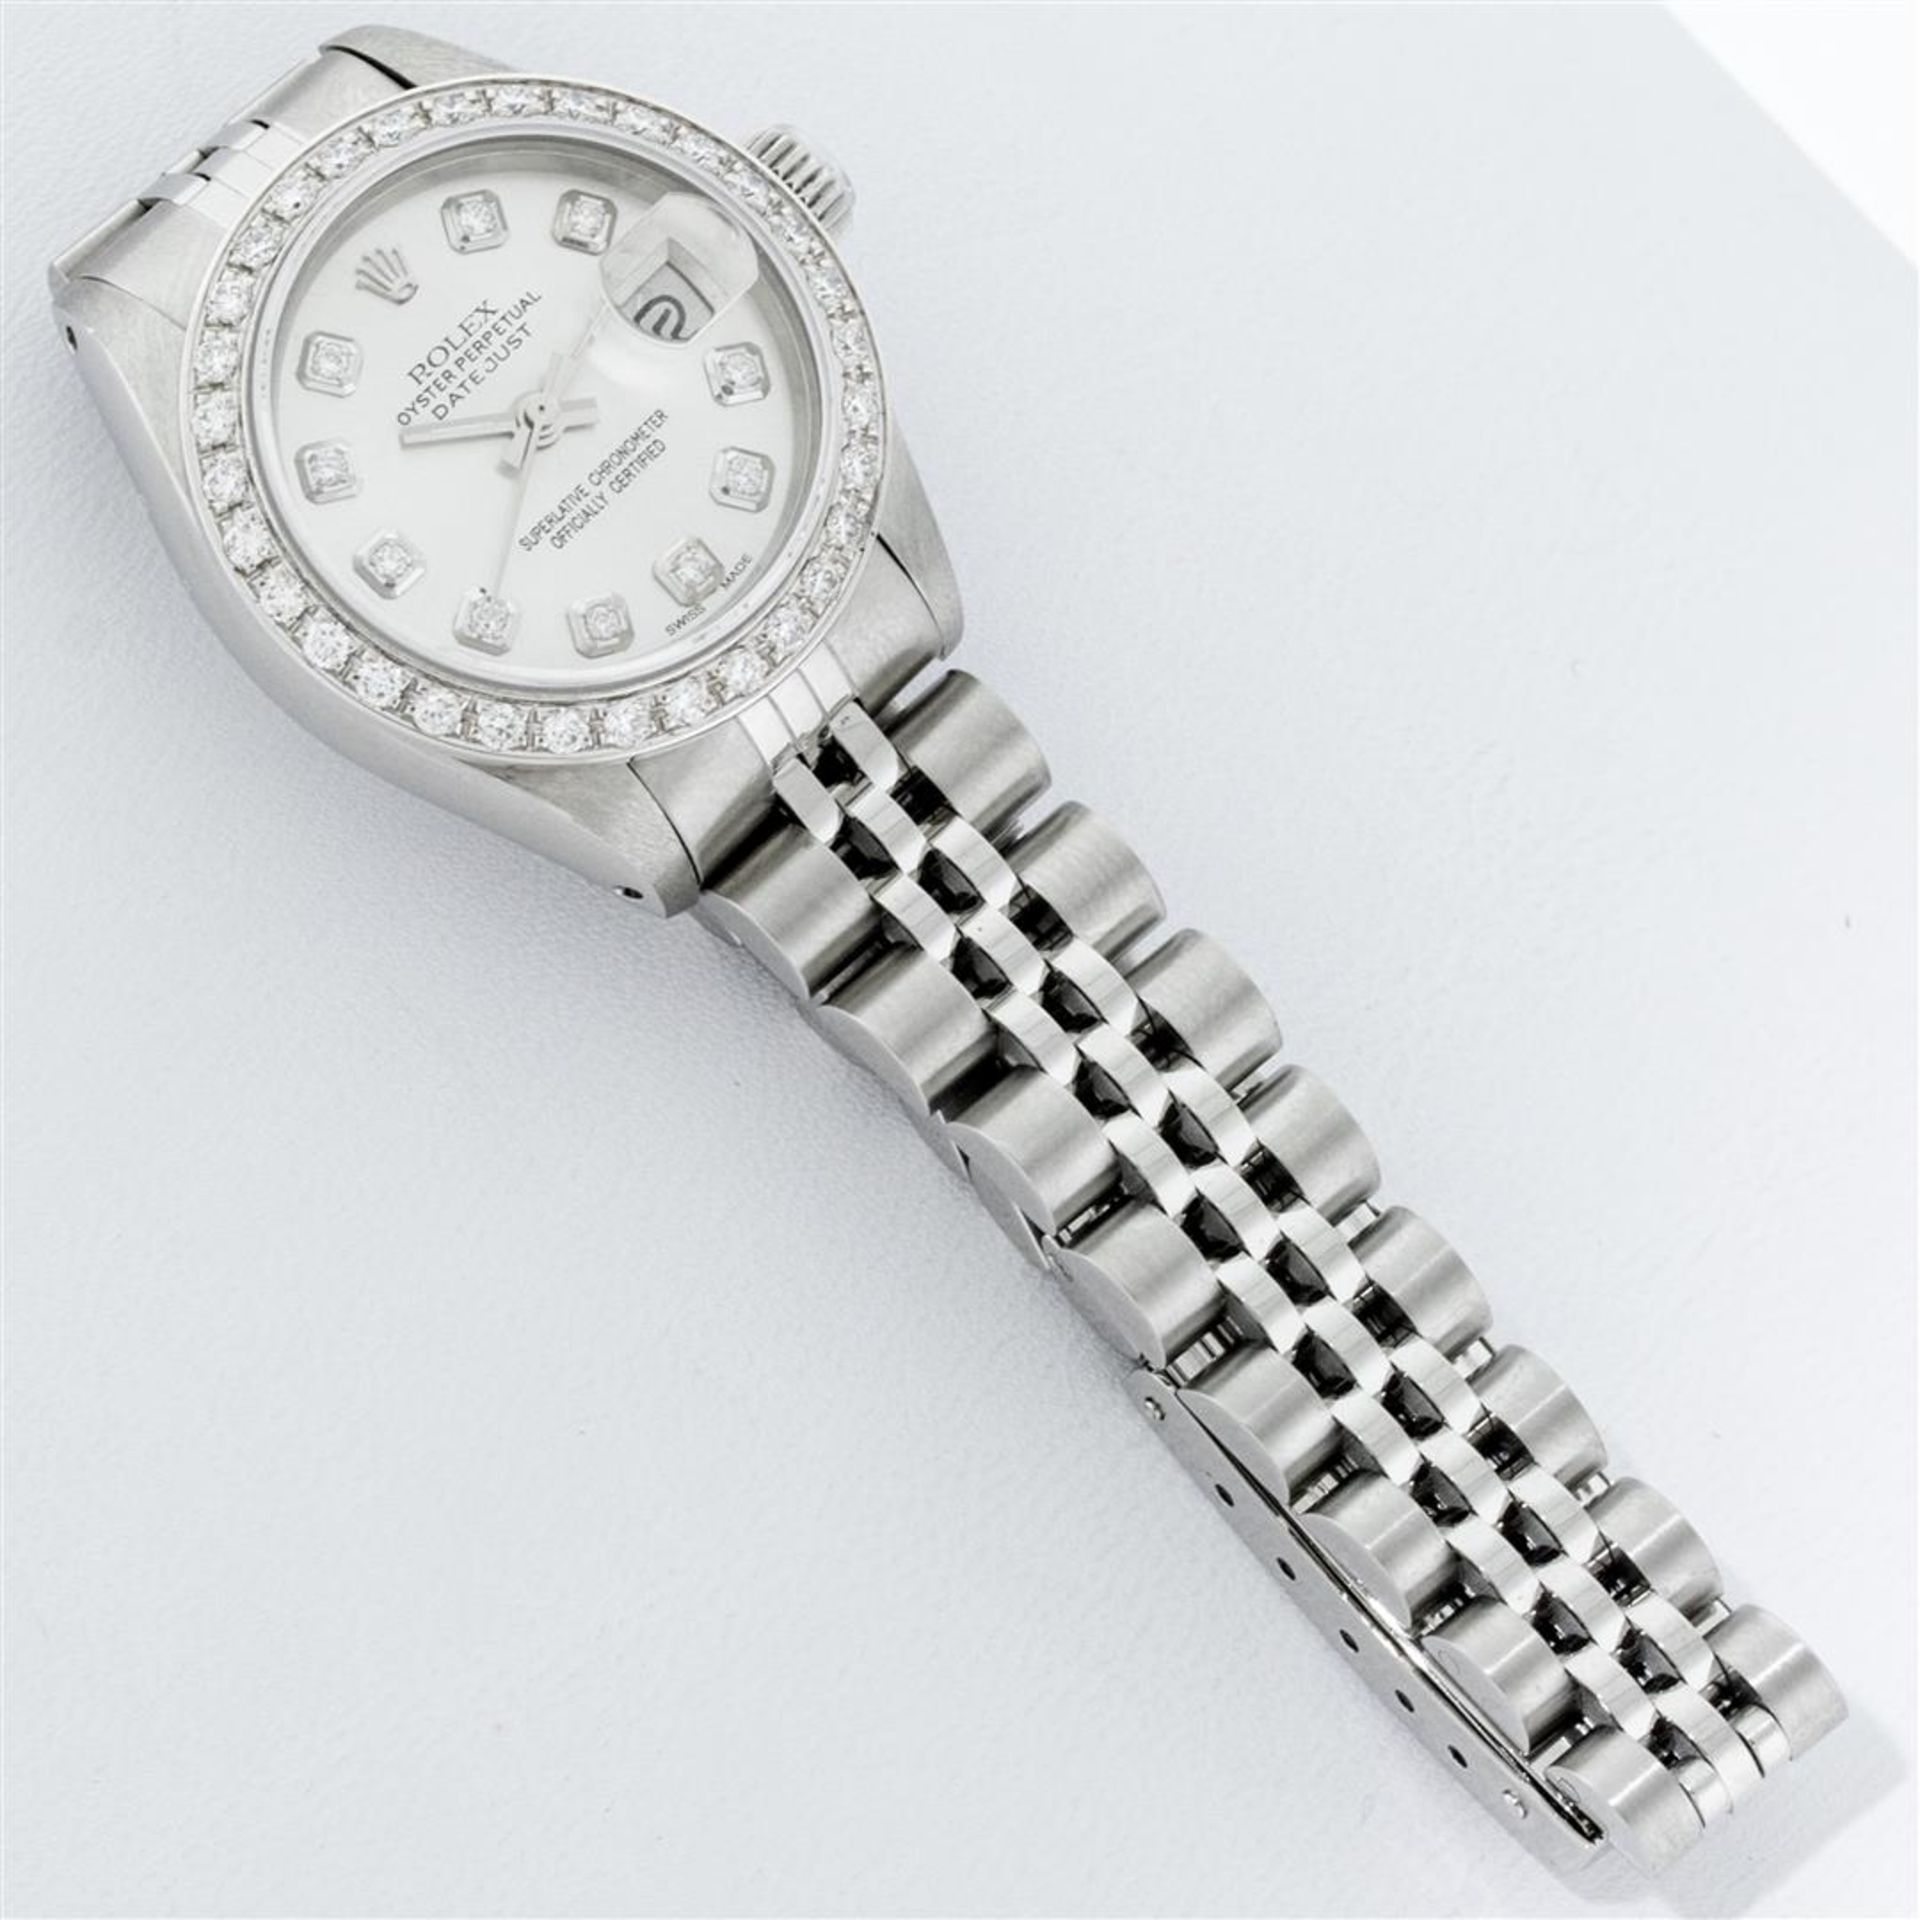 Rolex Ladies Stainless Steel Silver Diamond 26MM Oyster Perpetual Datejust - Image 7 of 9